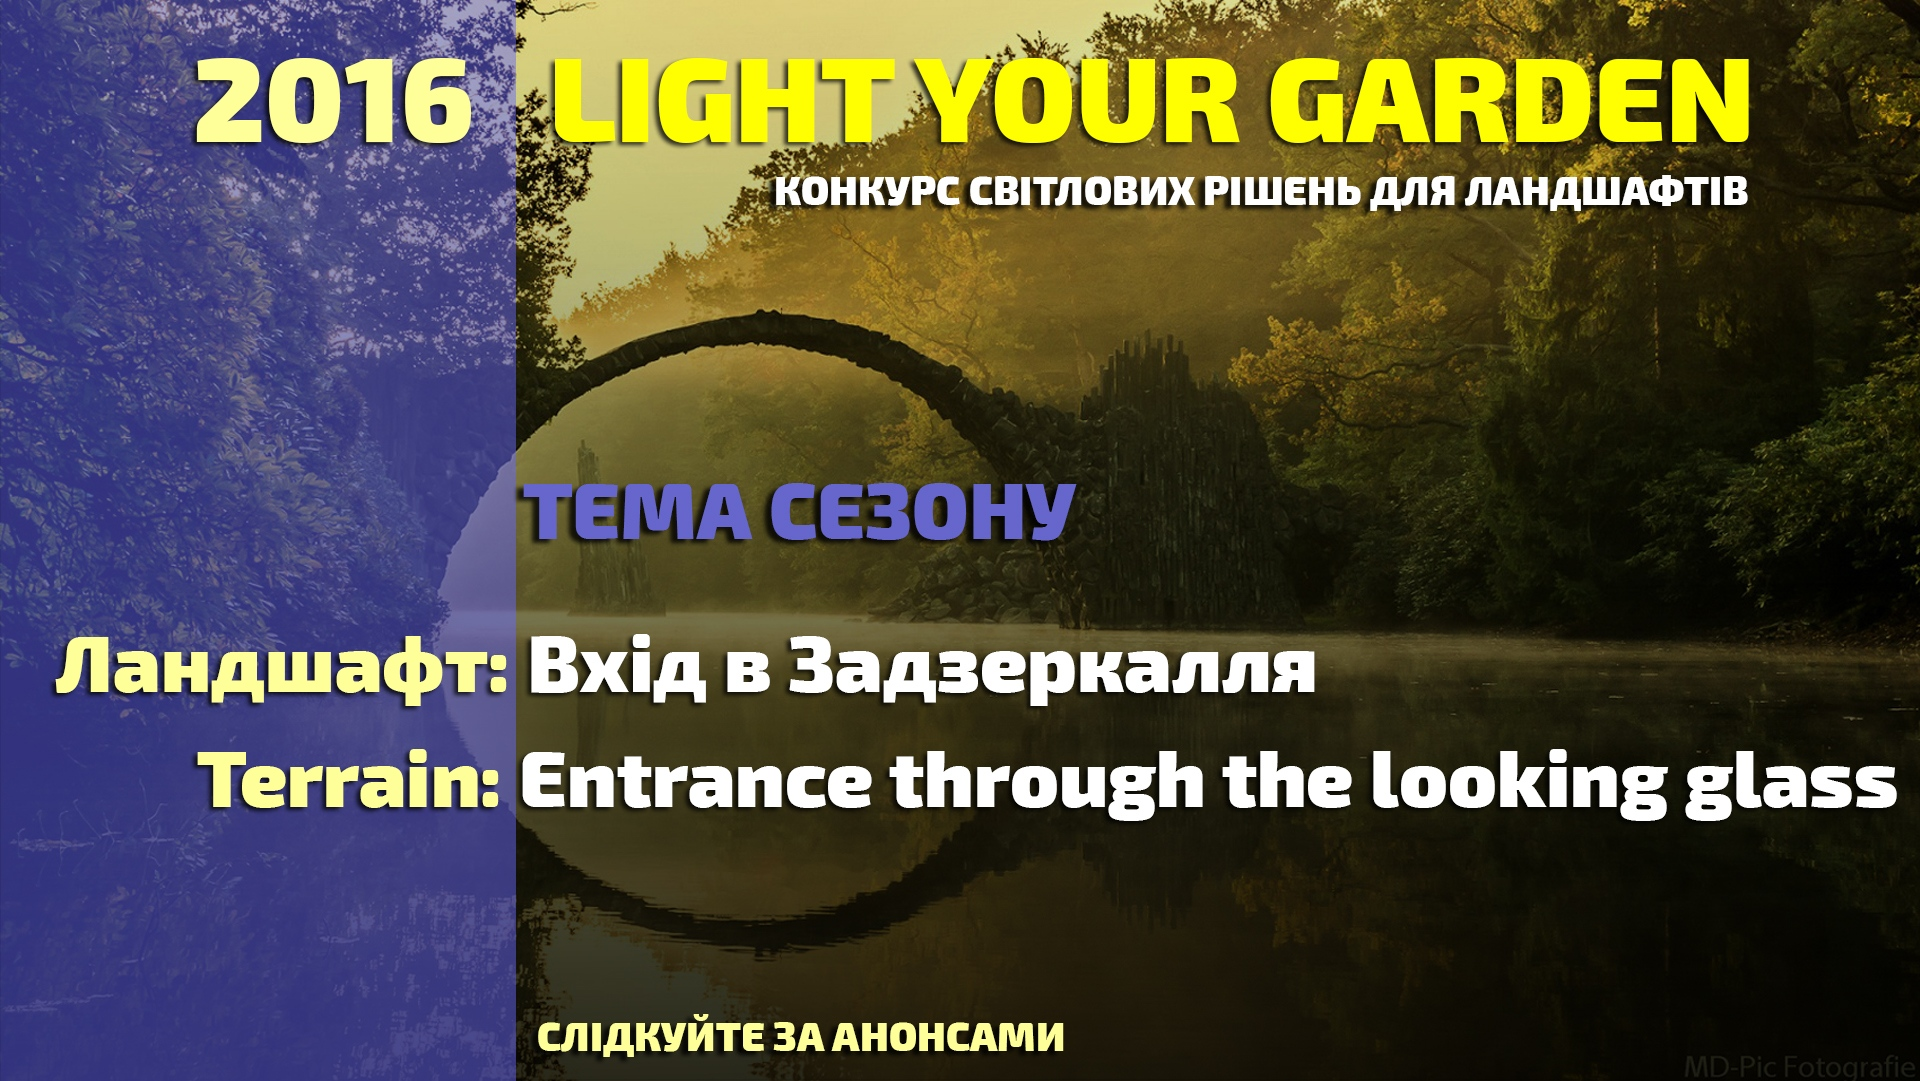 LIGHT YOUR GARDEN 2016